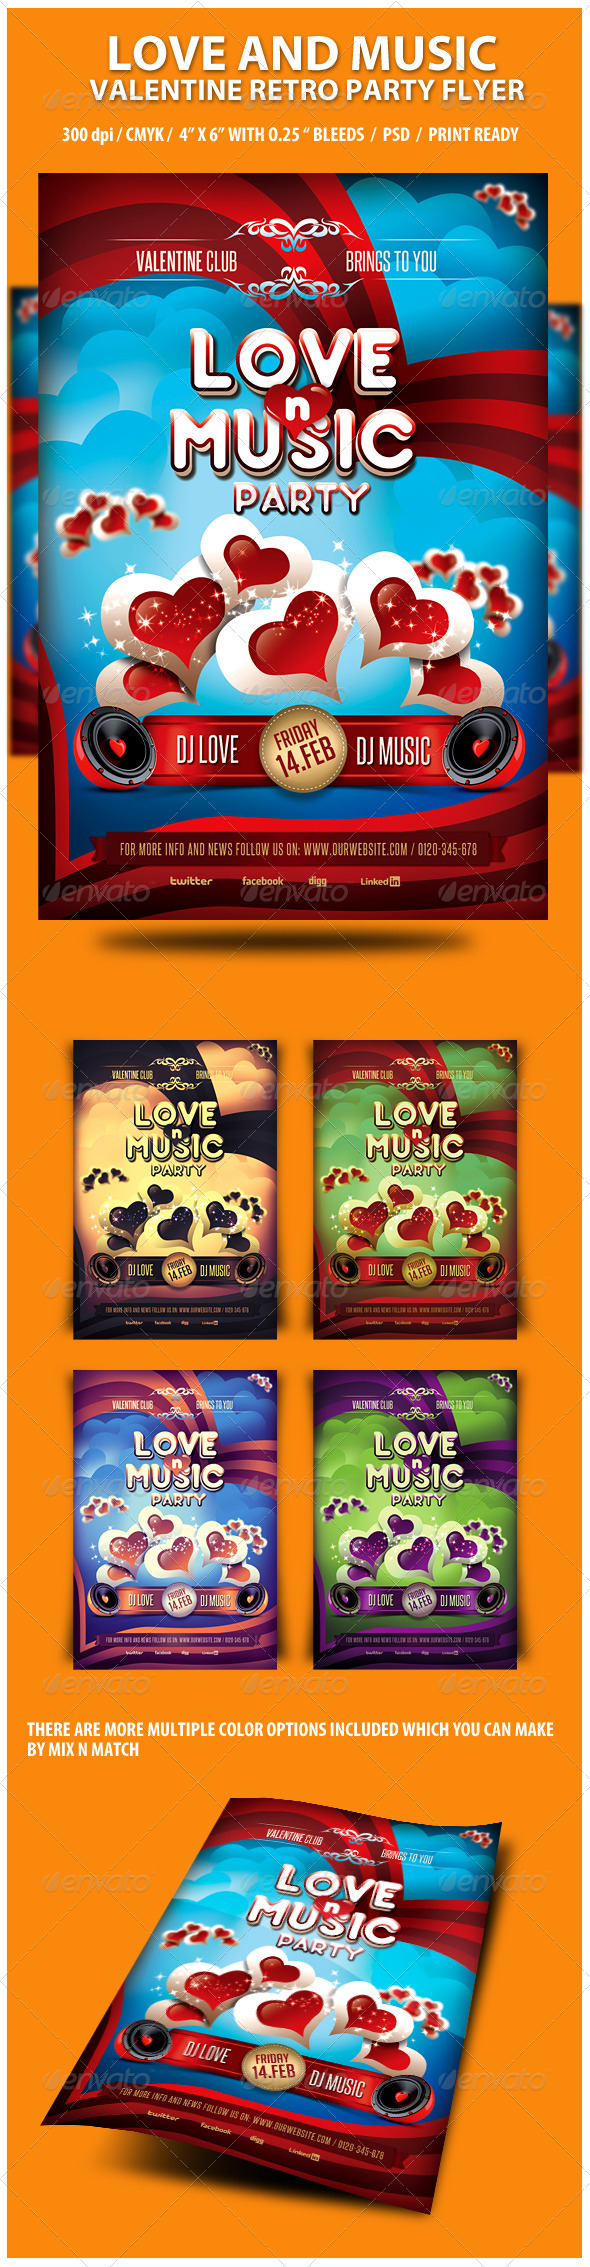 Love and Music Valentine Retro Party Flyer - Holidays Events